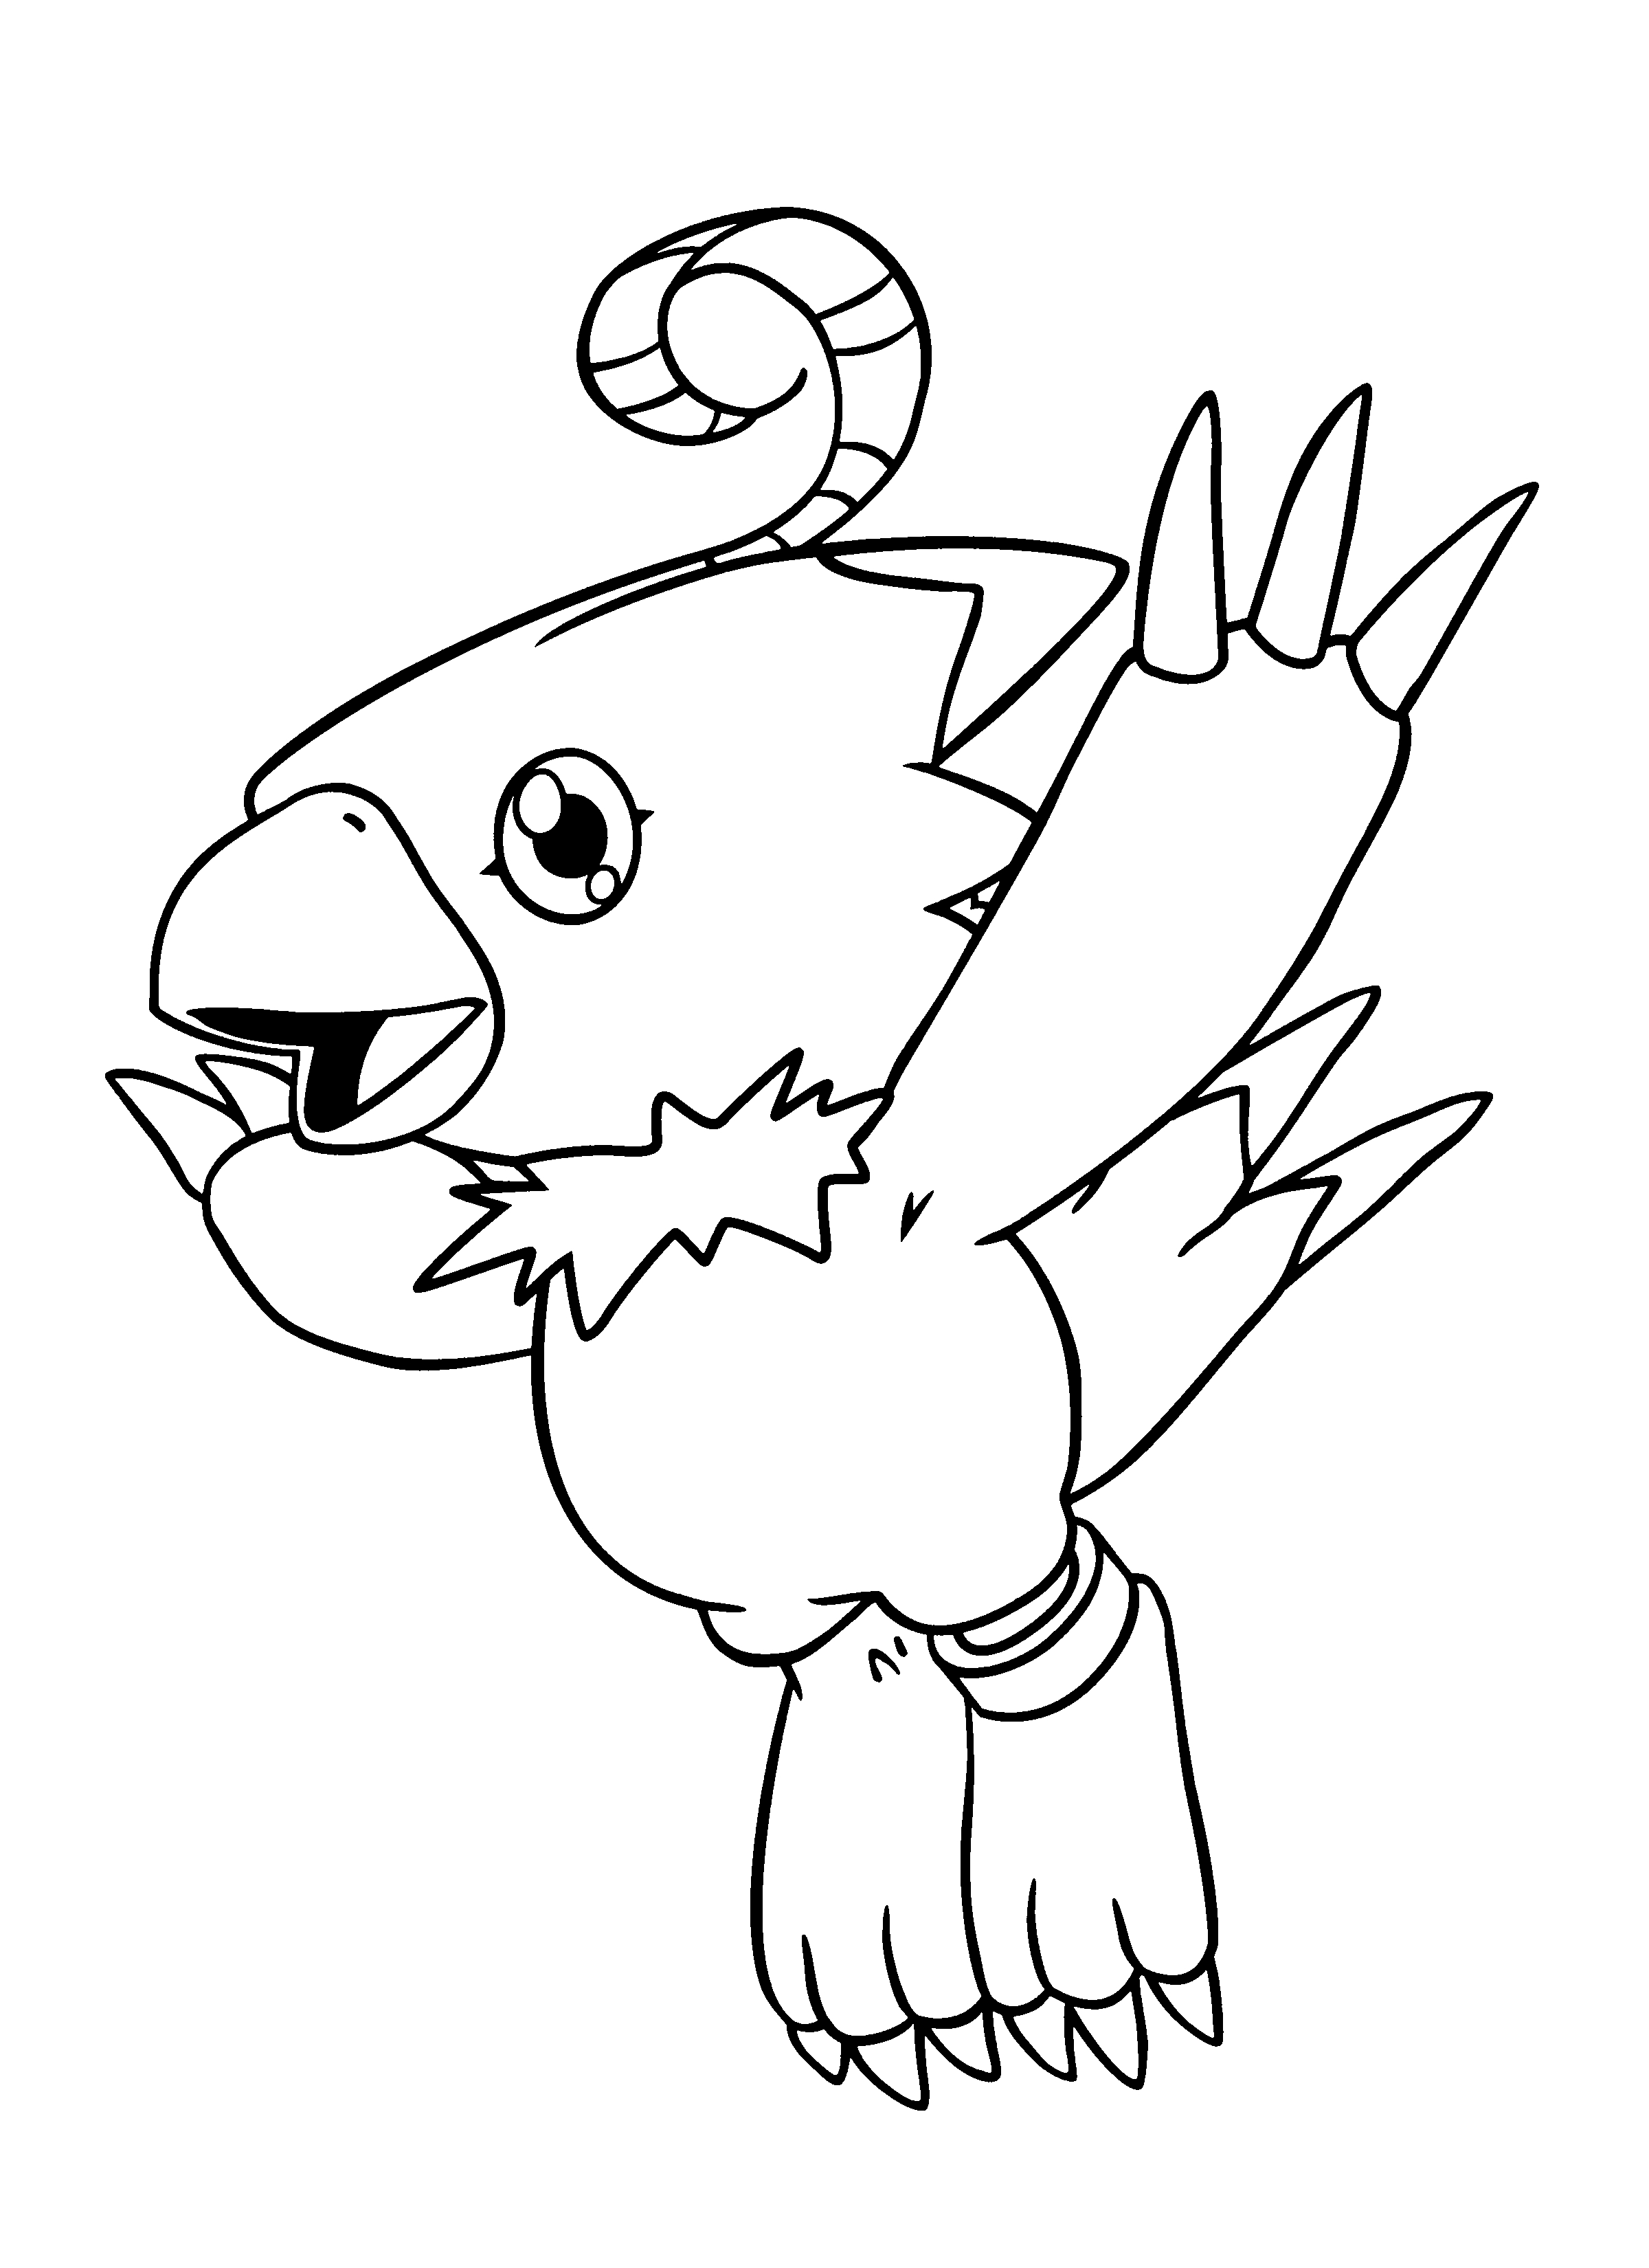 Digimon Coloring Pages Custom Digimon Coloring Pages Digimon Printable Of Custom Coloring Pages Gallery